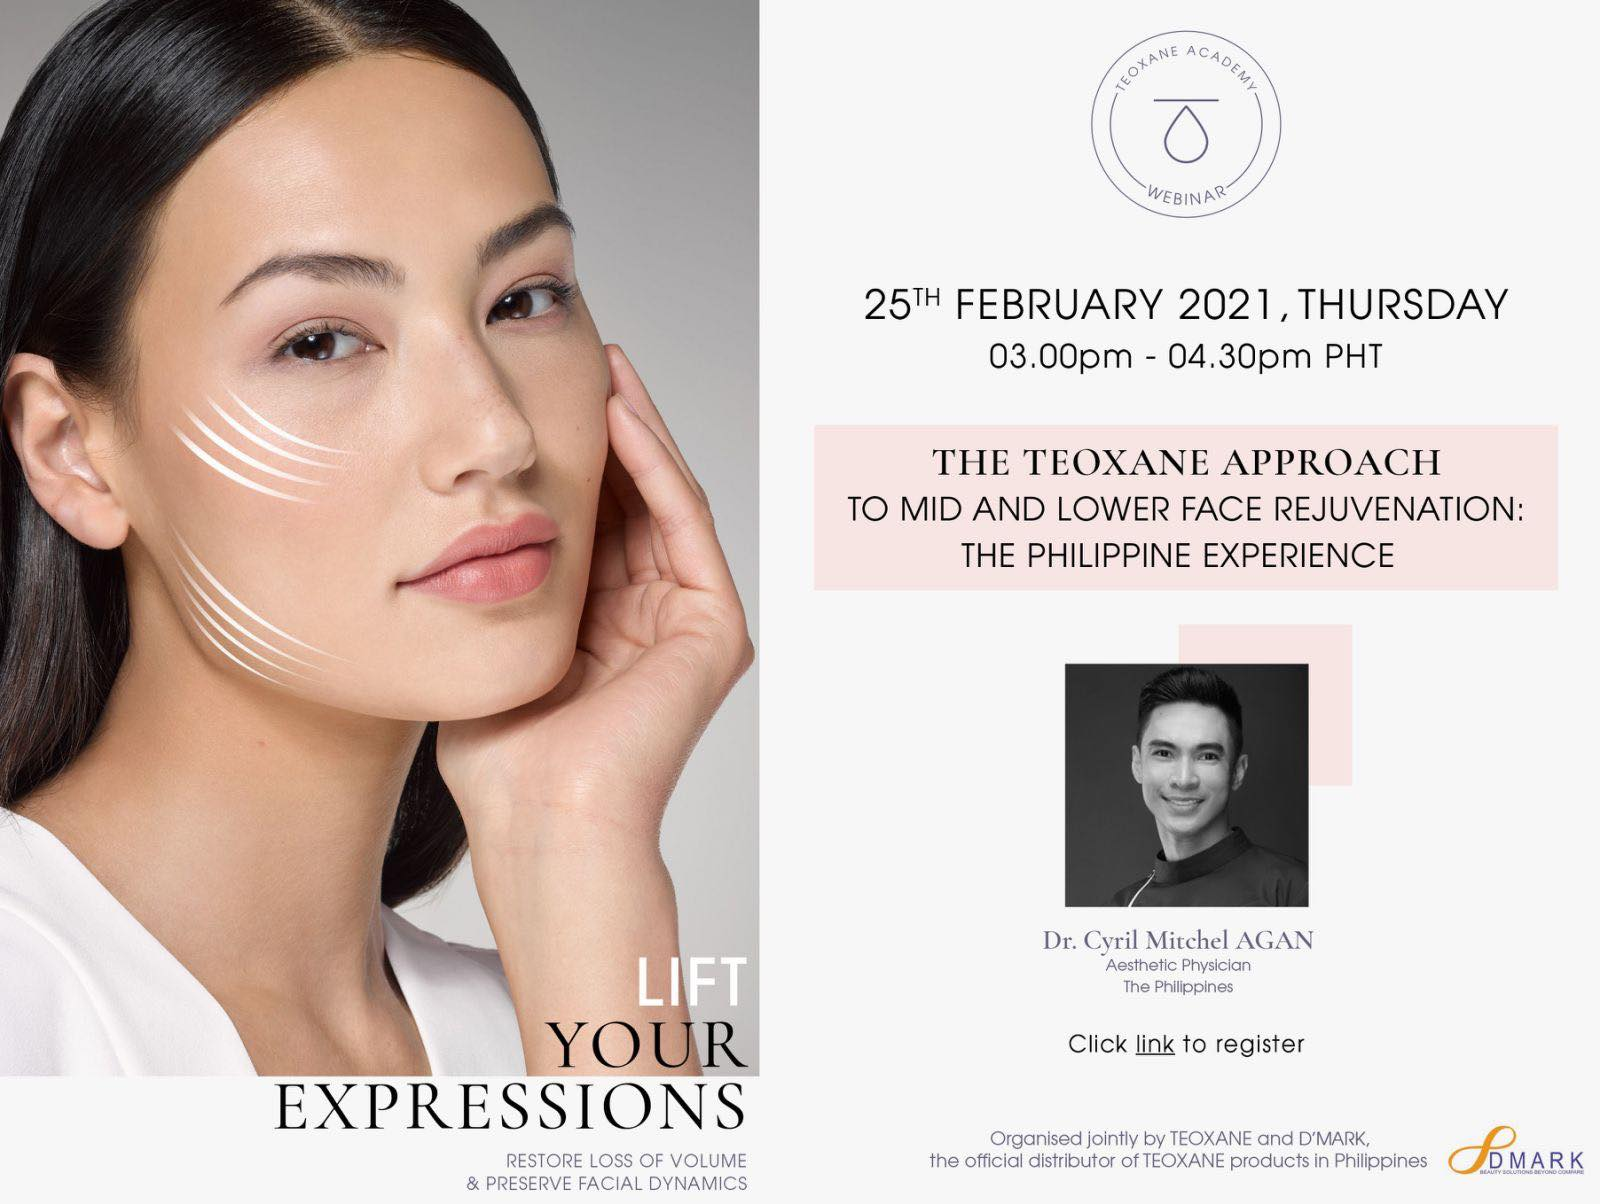 The Teoxane Approach - To Mid and Lower Face Rejuvenation - The Philippine Experience